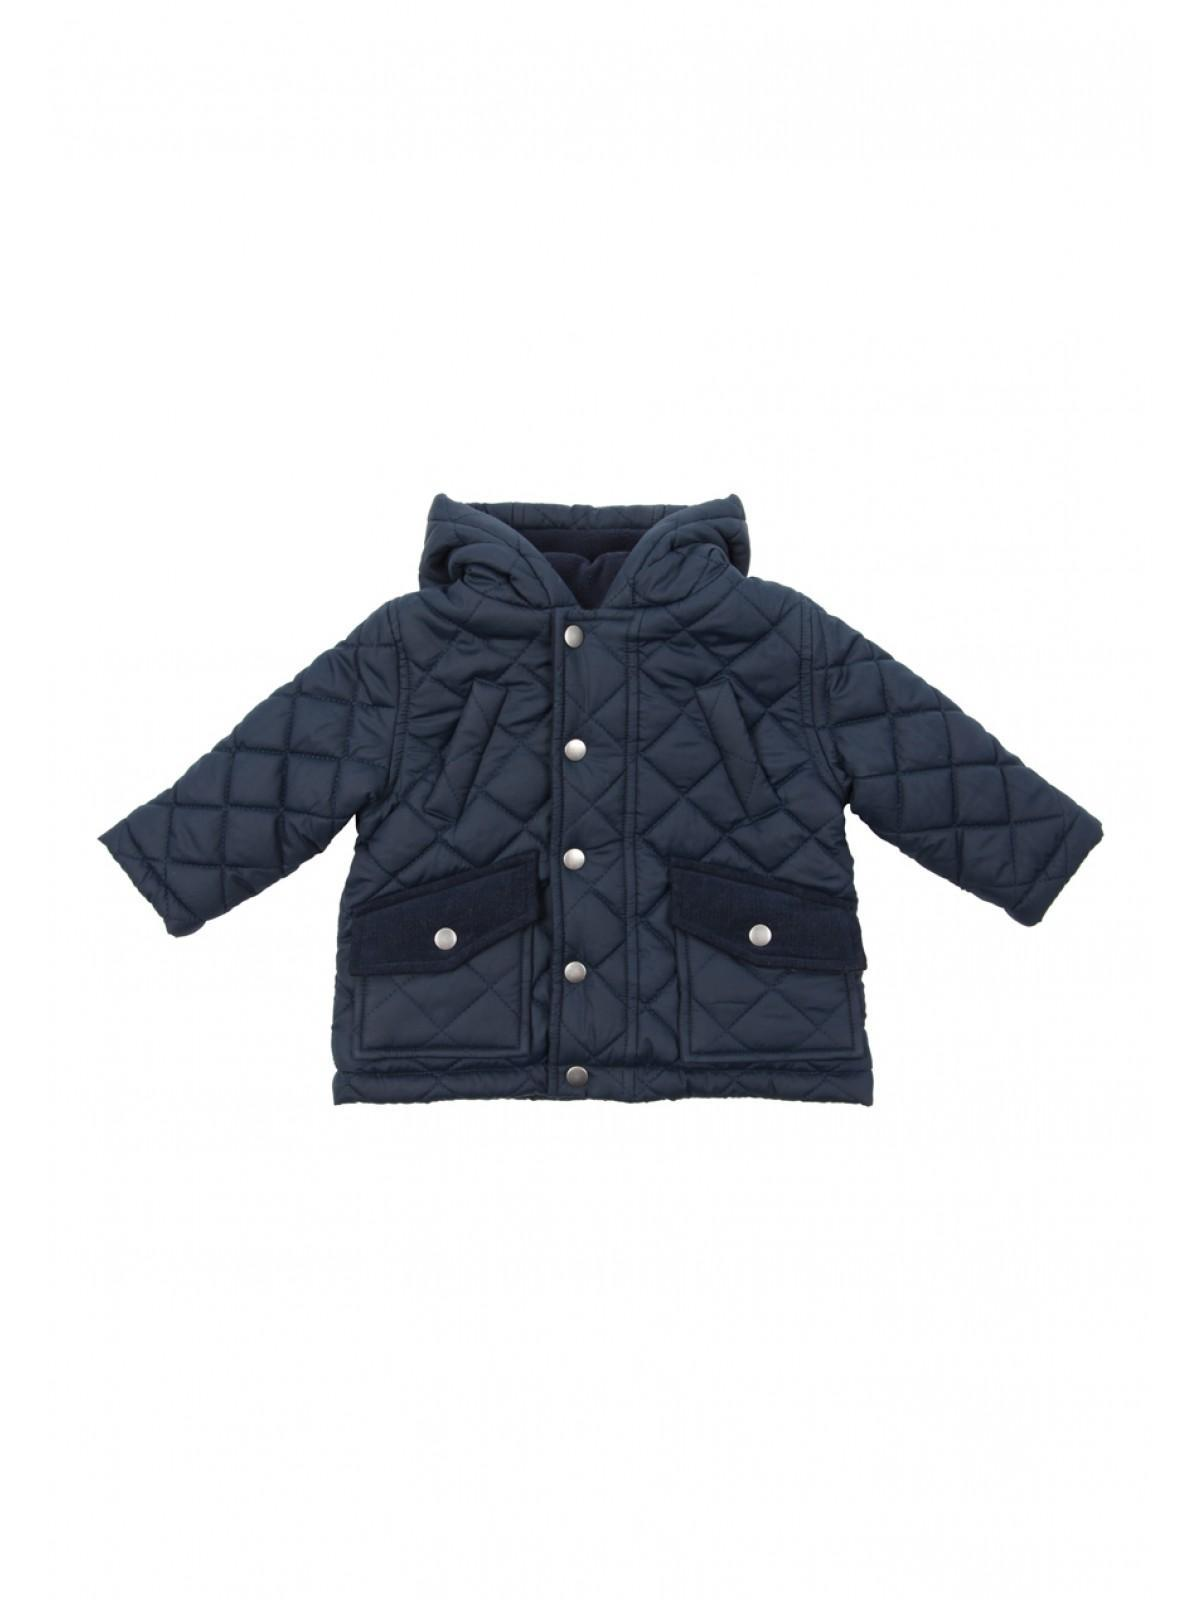 Boys aby Boys Quilted Jacket | Peacocks : baby quilted jacket - Adamdwight.com